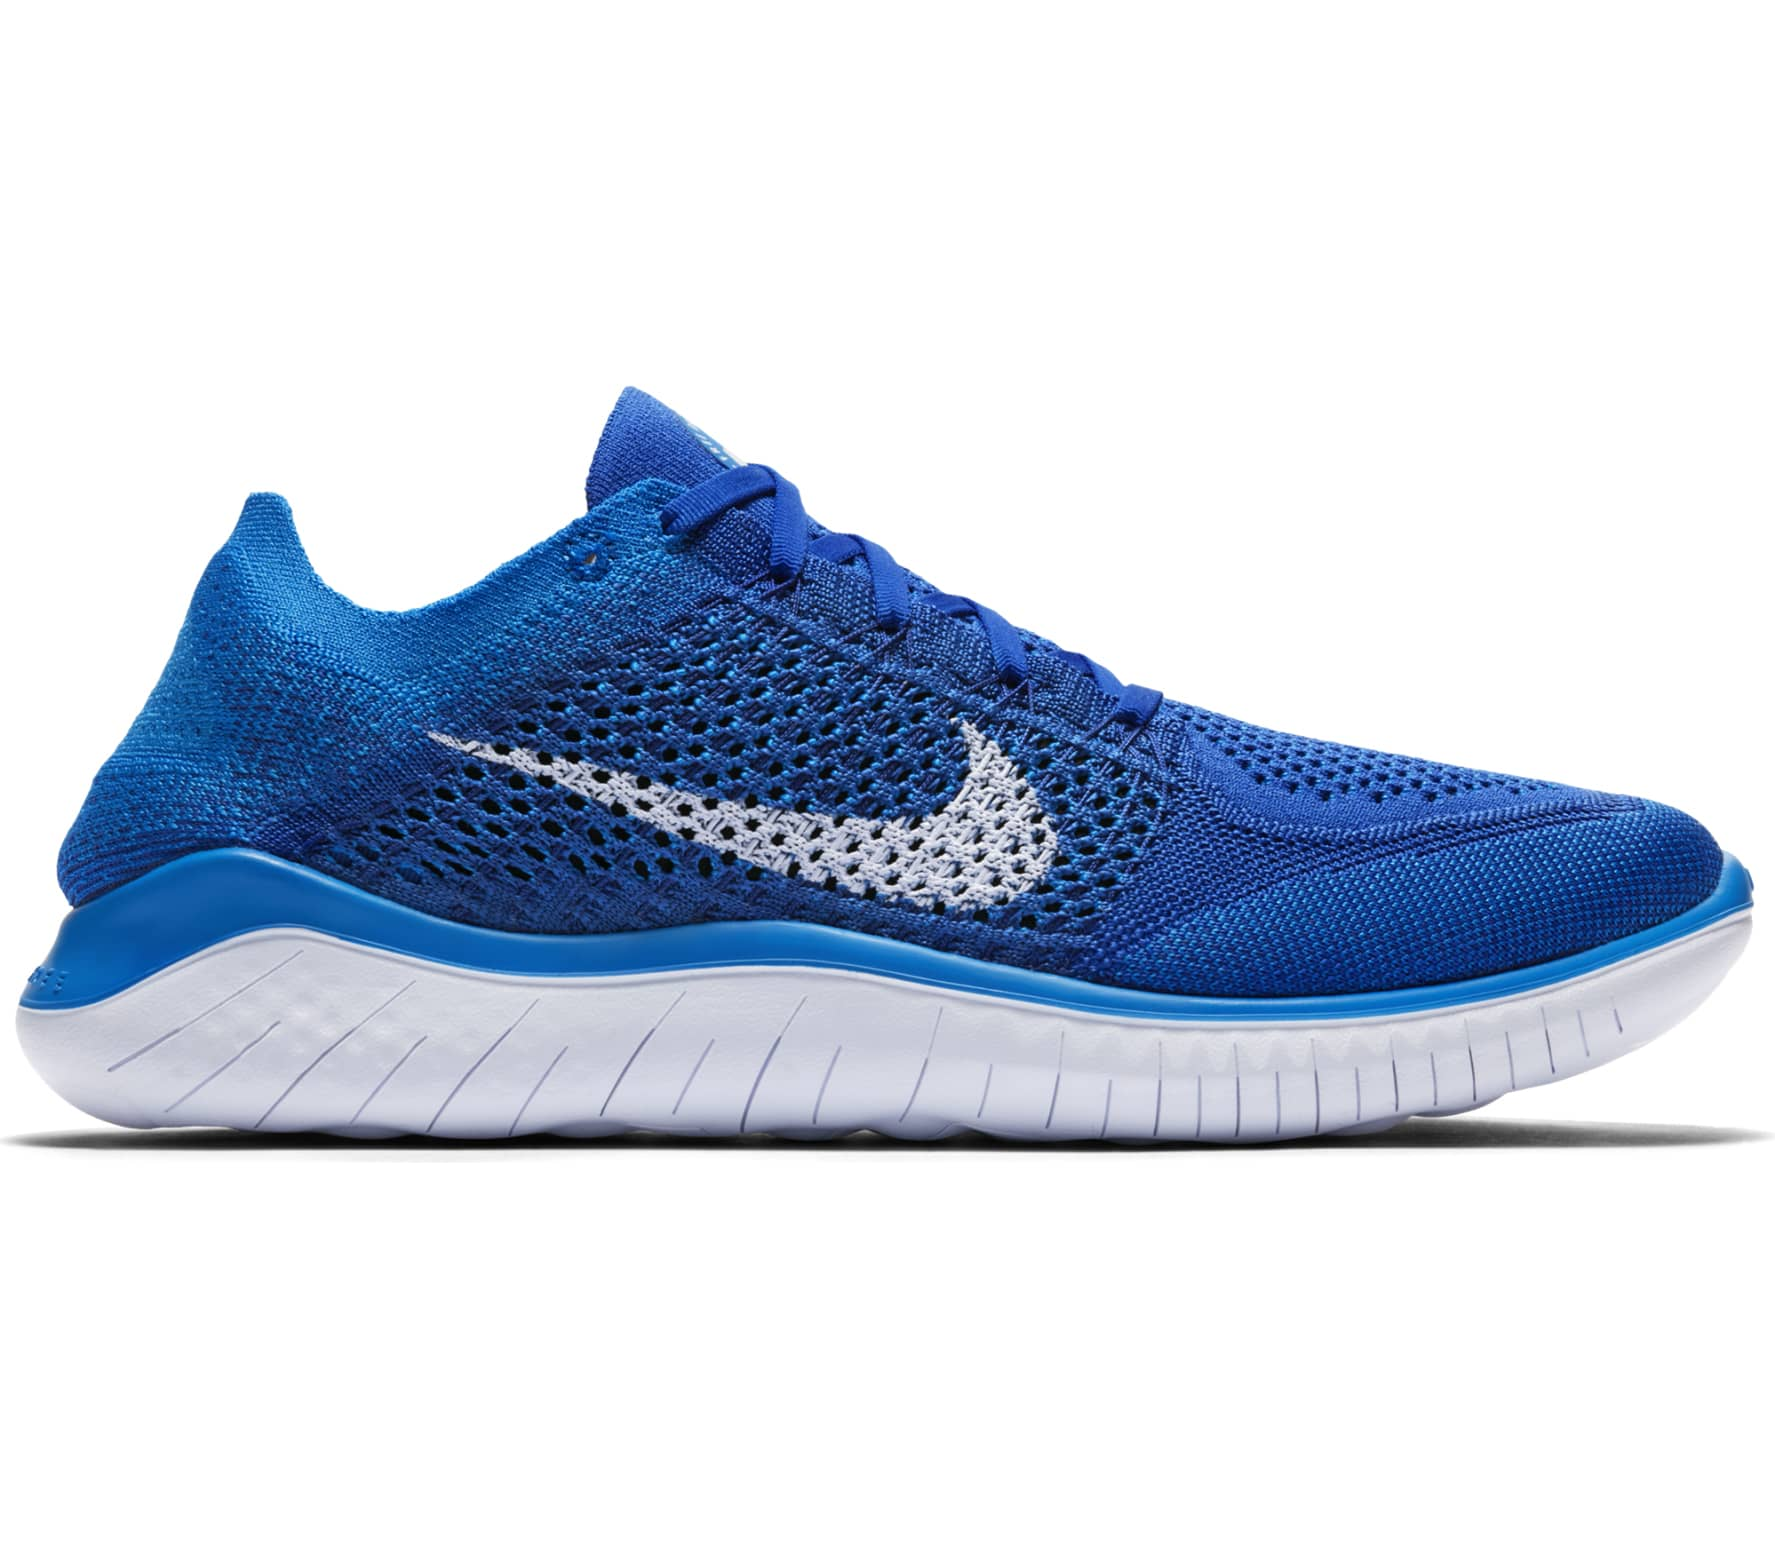 8c88ad43e5f ... 50% off nike free rn flyknit 2018 mens running shoes blue dff66 8915a